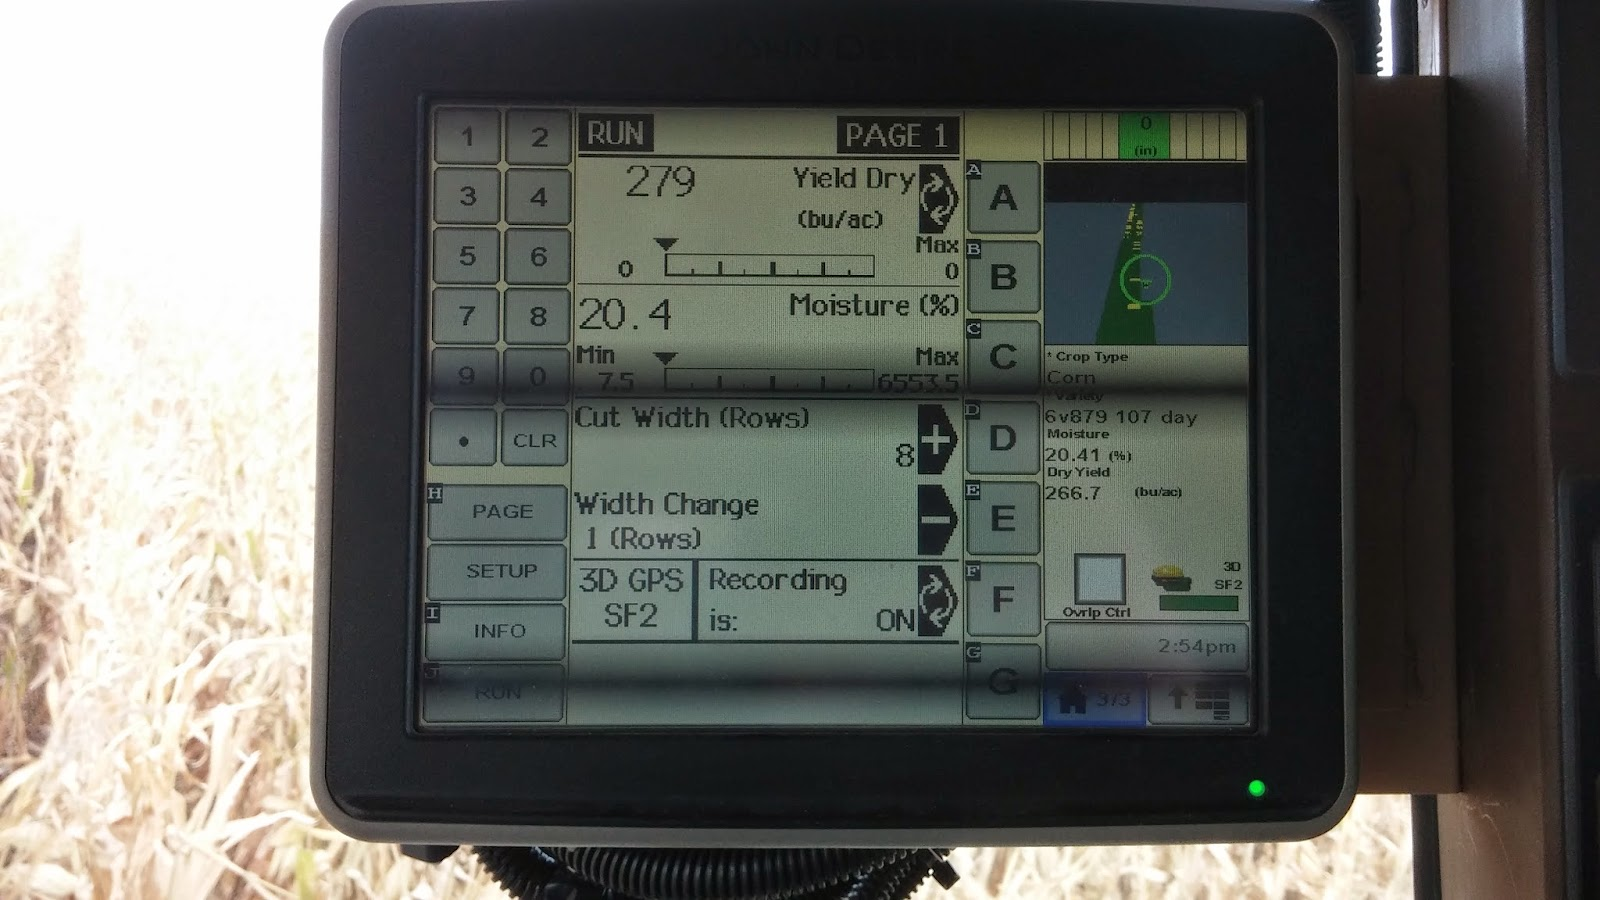 medium resolution of we installed a 90 foot wiring harness a moisture sensor and a mass flow sensor which is a fancy way of saying yield sensor in our combine